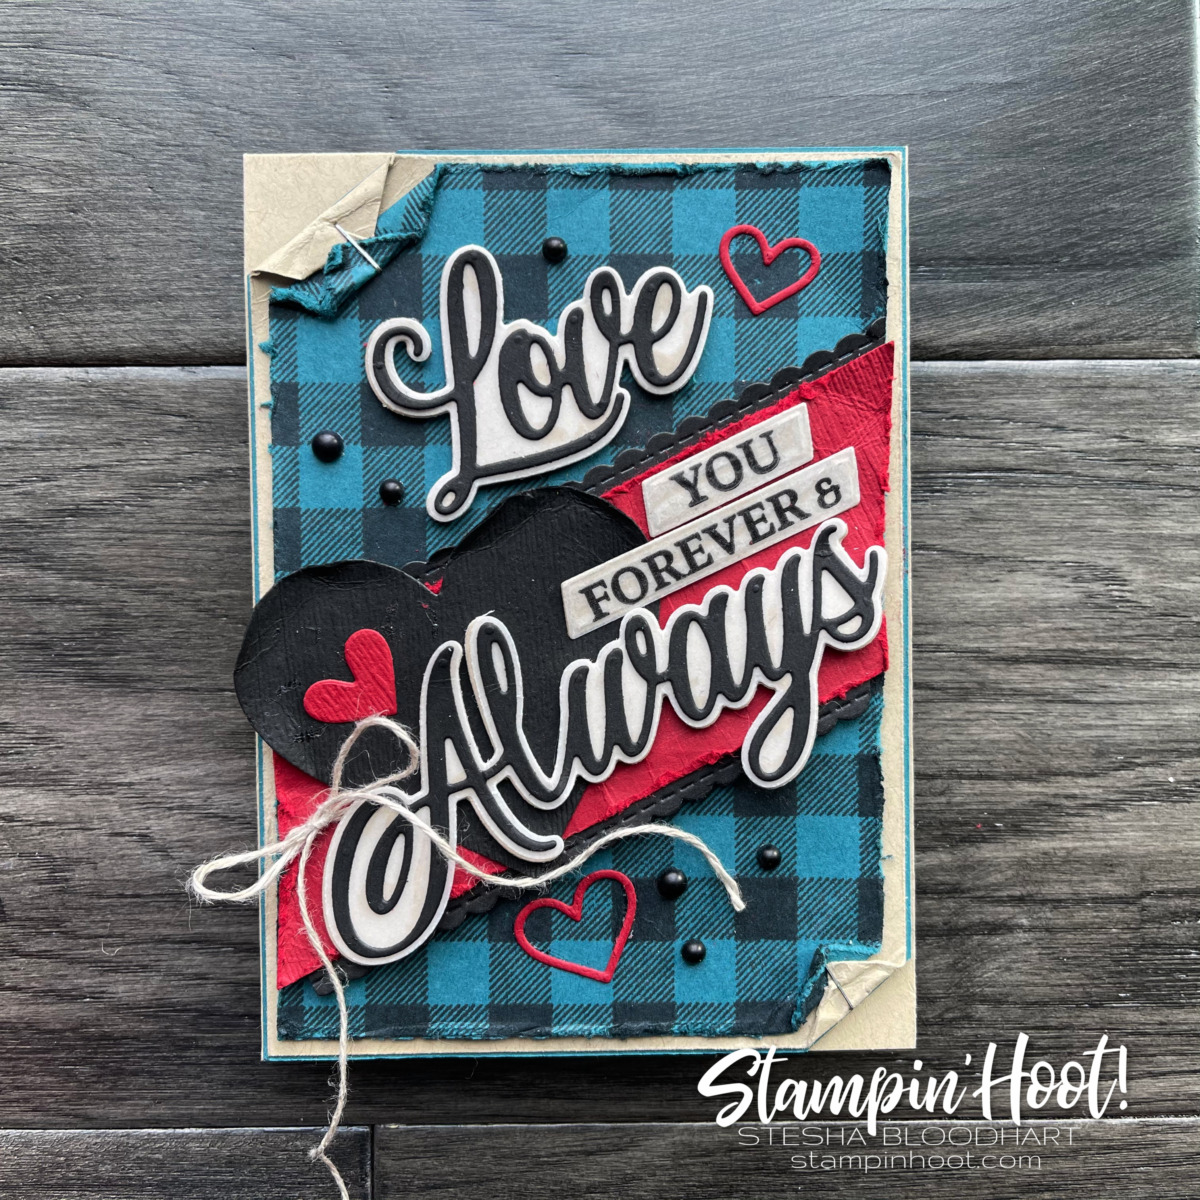 Always and Forever with Buffalo Check Plaid #tgifc301 Stesha Bloodhart, Stampin' Hoot!